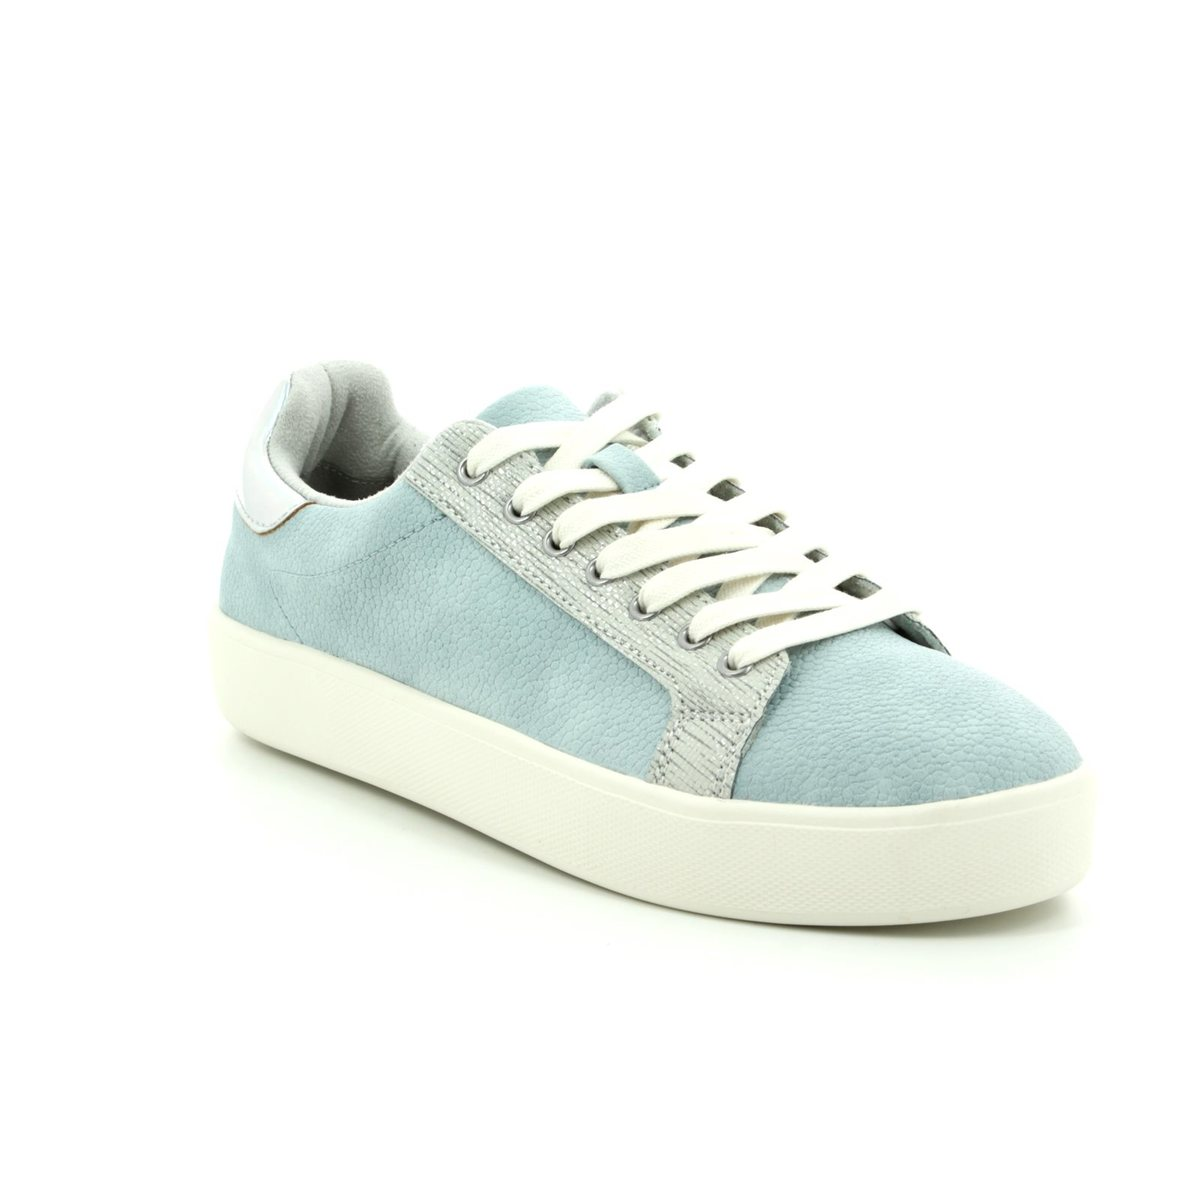 save off ecdc3 618c7 23724/20/833 Marras at Begg Shoes & Bags